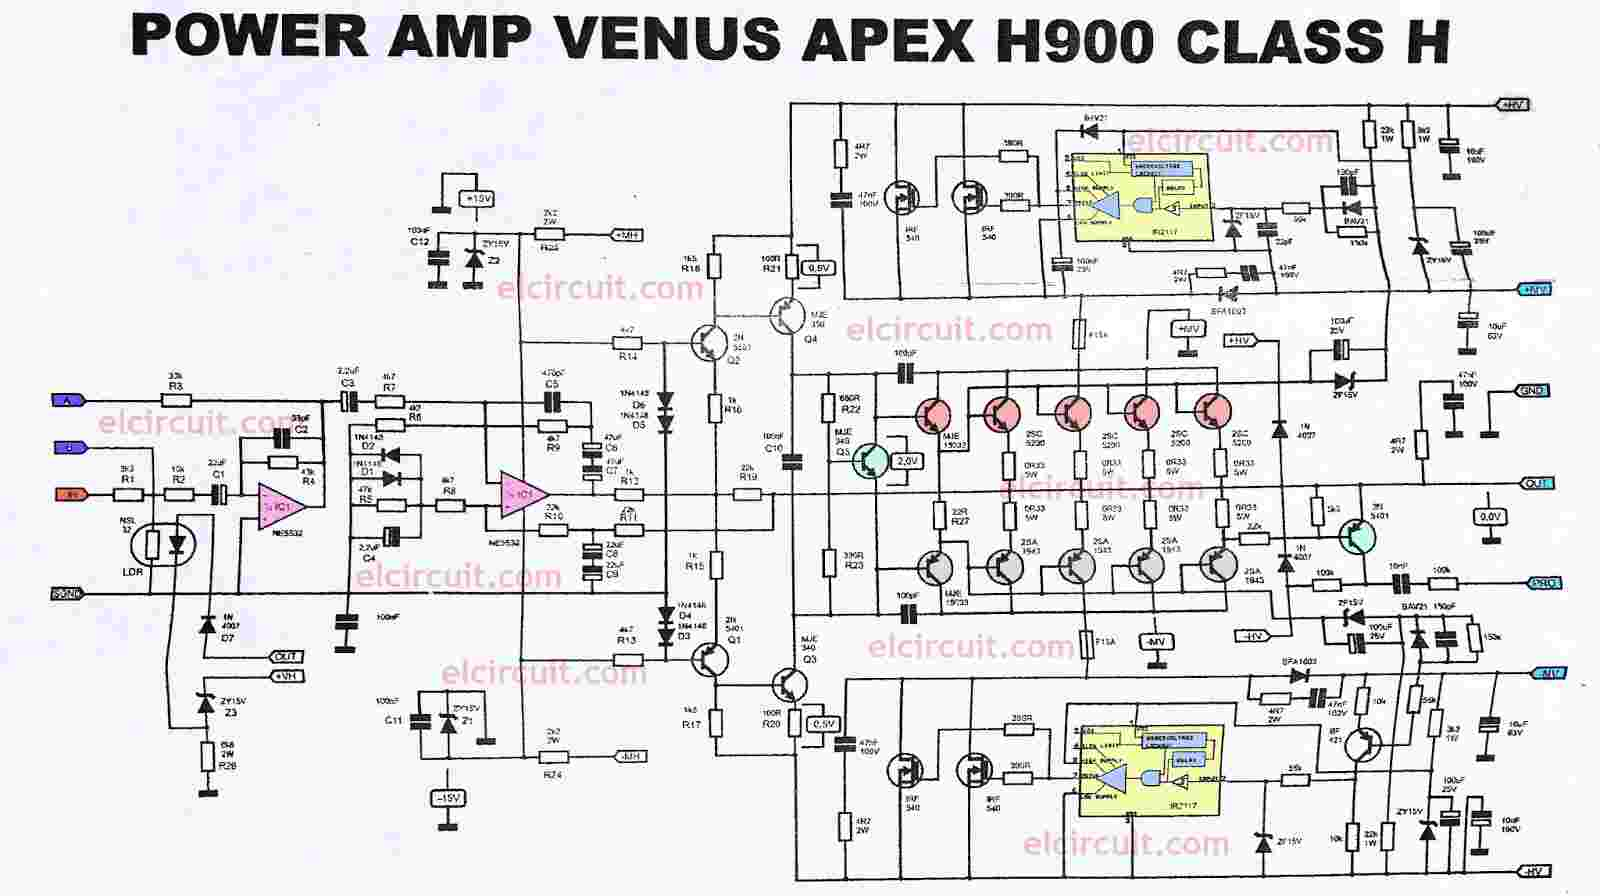 2000w power amplifier circuit diagram 2008 nissan frontier stereo wiring apex h900 efficient flat and powerful